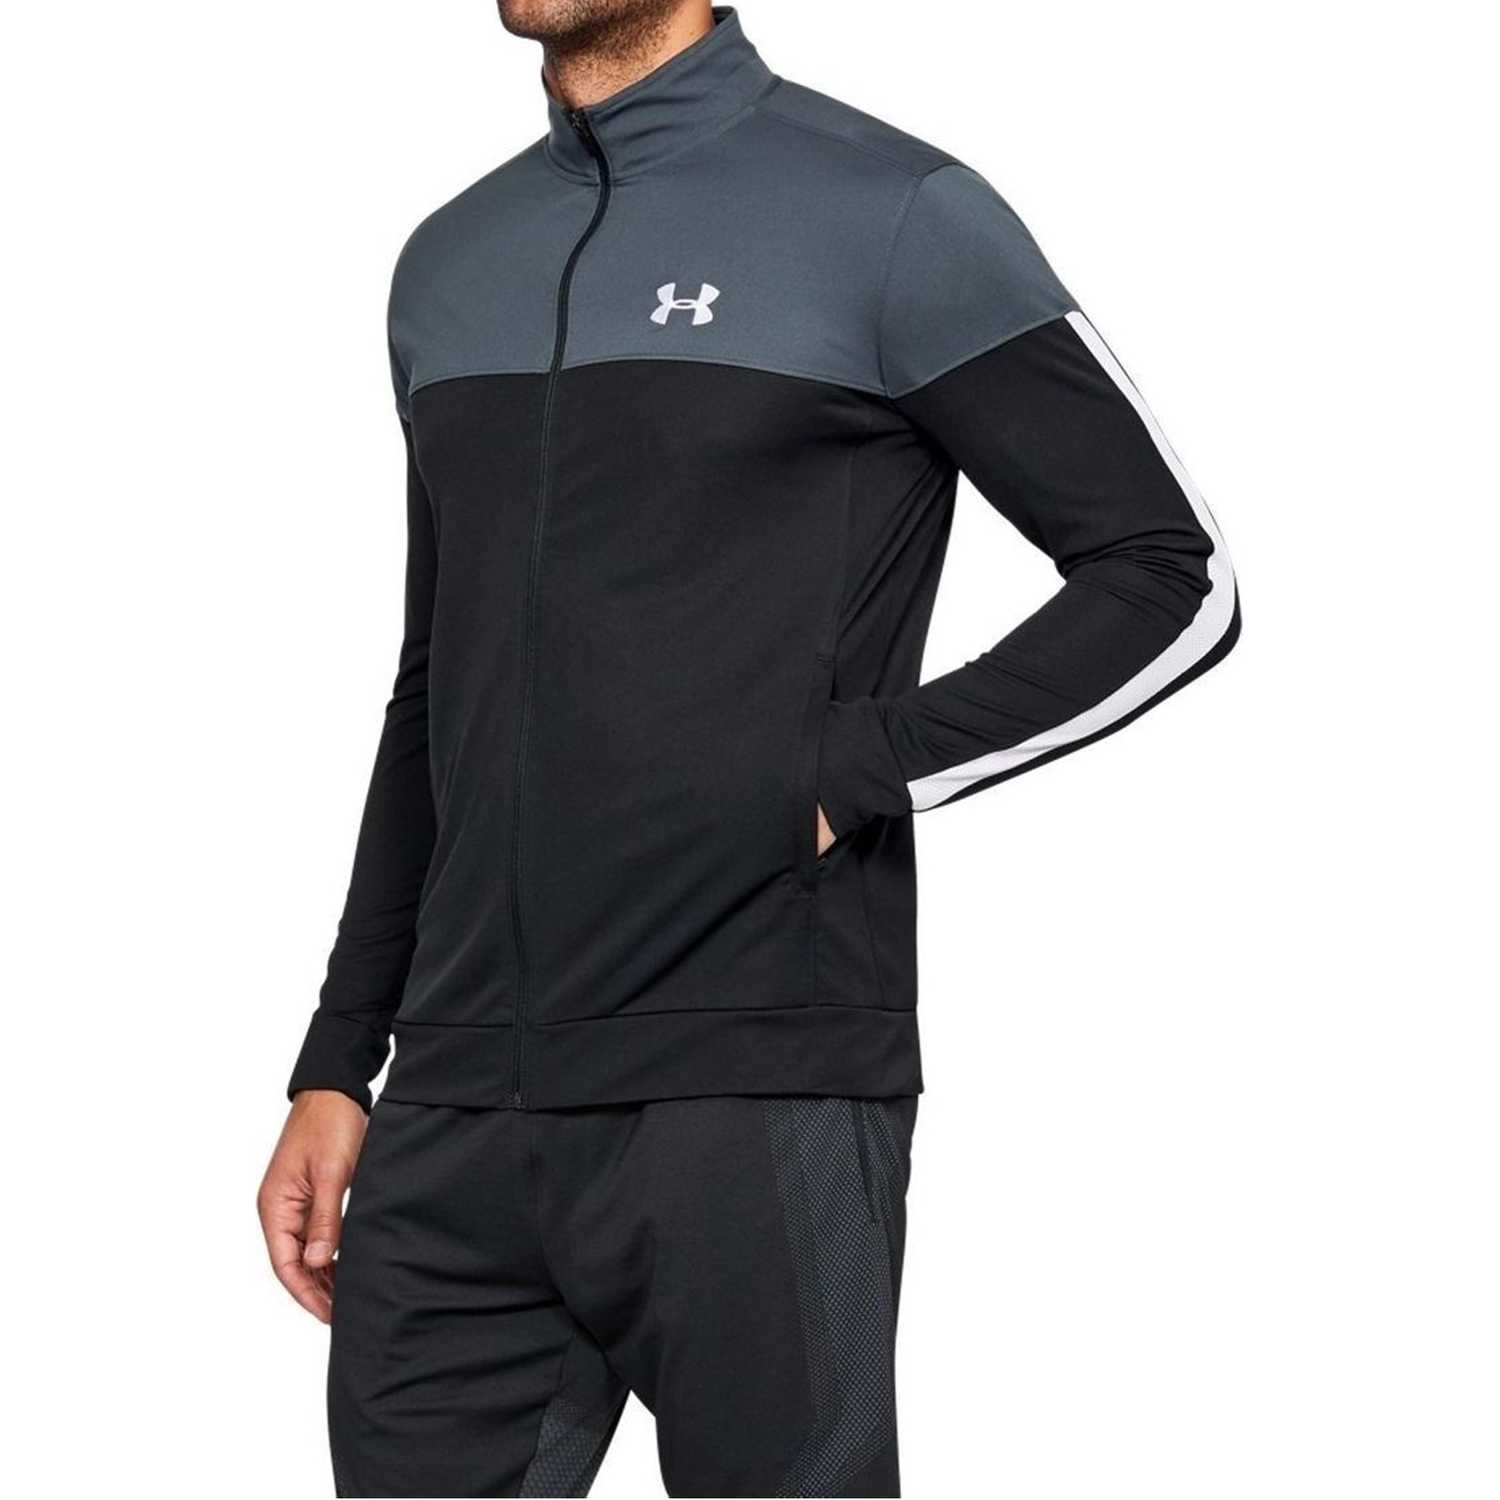 Under Armour sportstyle pique track jacket NEGRO / GRIS Casacas de Atletismo